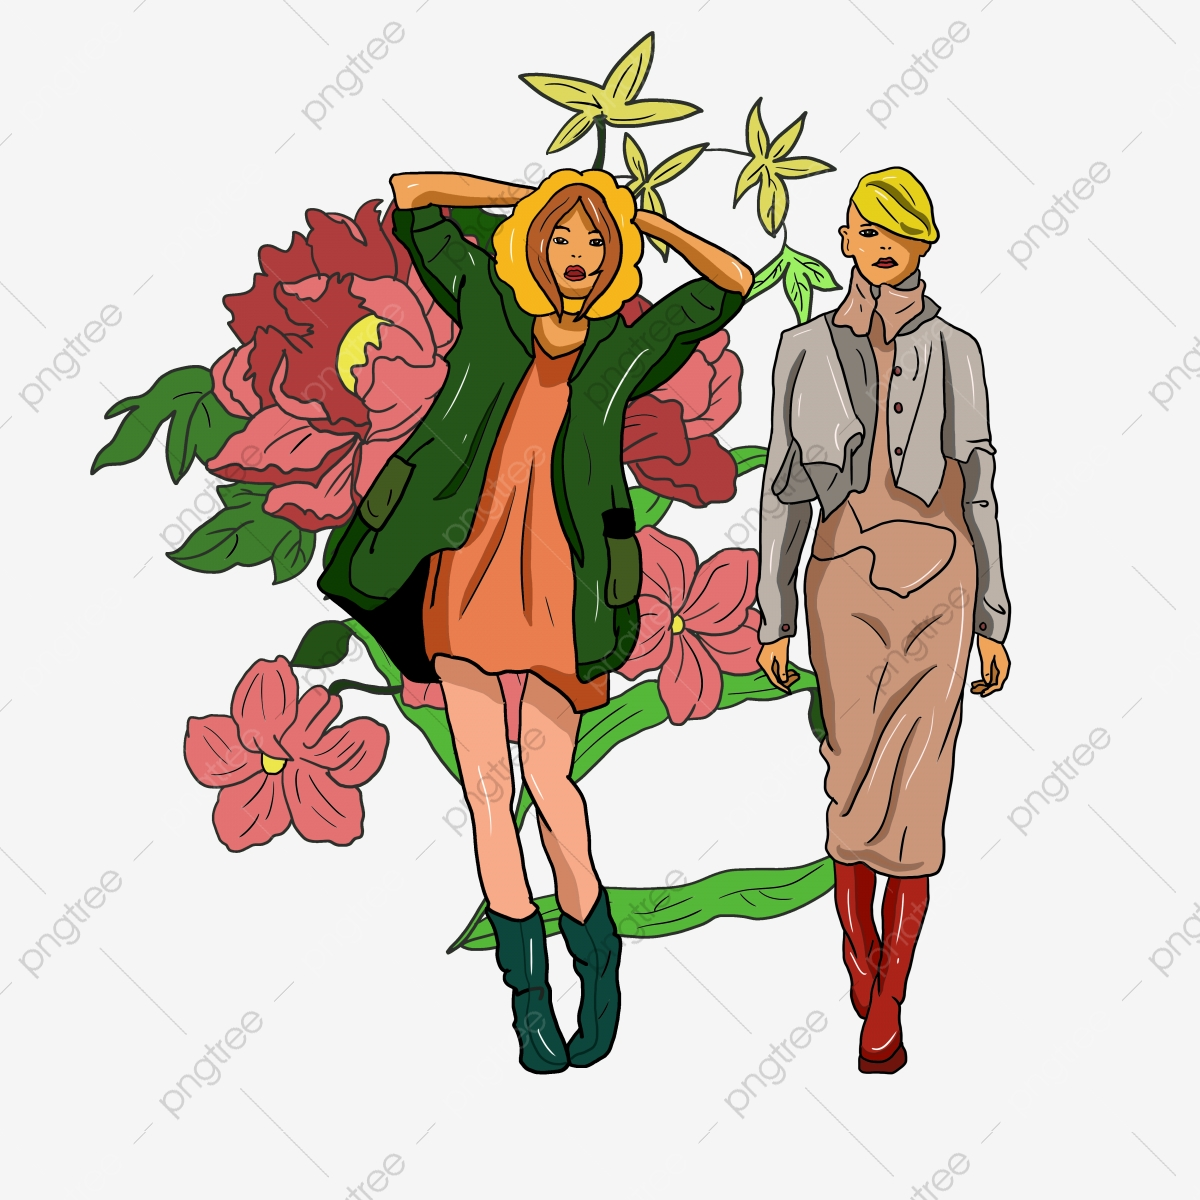 Young clipart young sibling. Two funny sisters trend